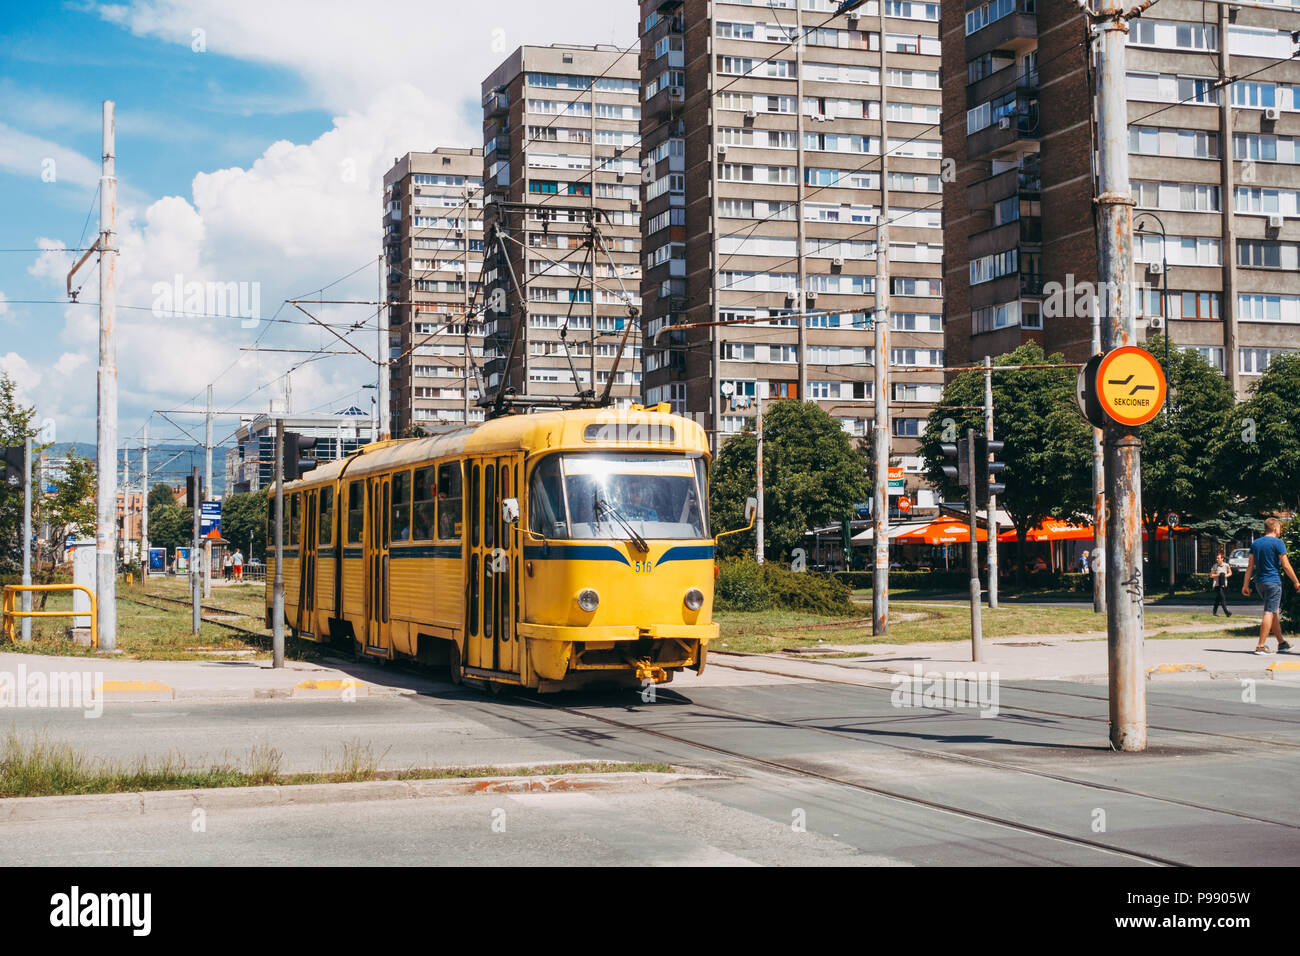 a yellow Tatra T3 tramcar crosses the road on the outskirts of Sarajevo, Bosnia and Herzegovina - Stock Image